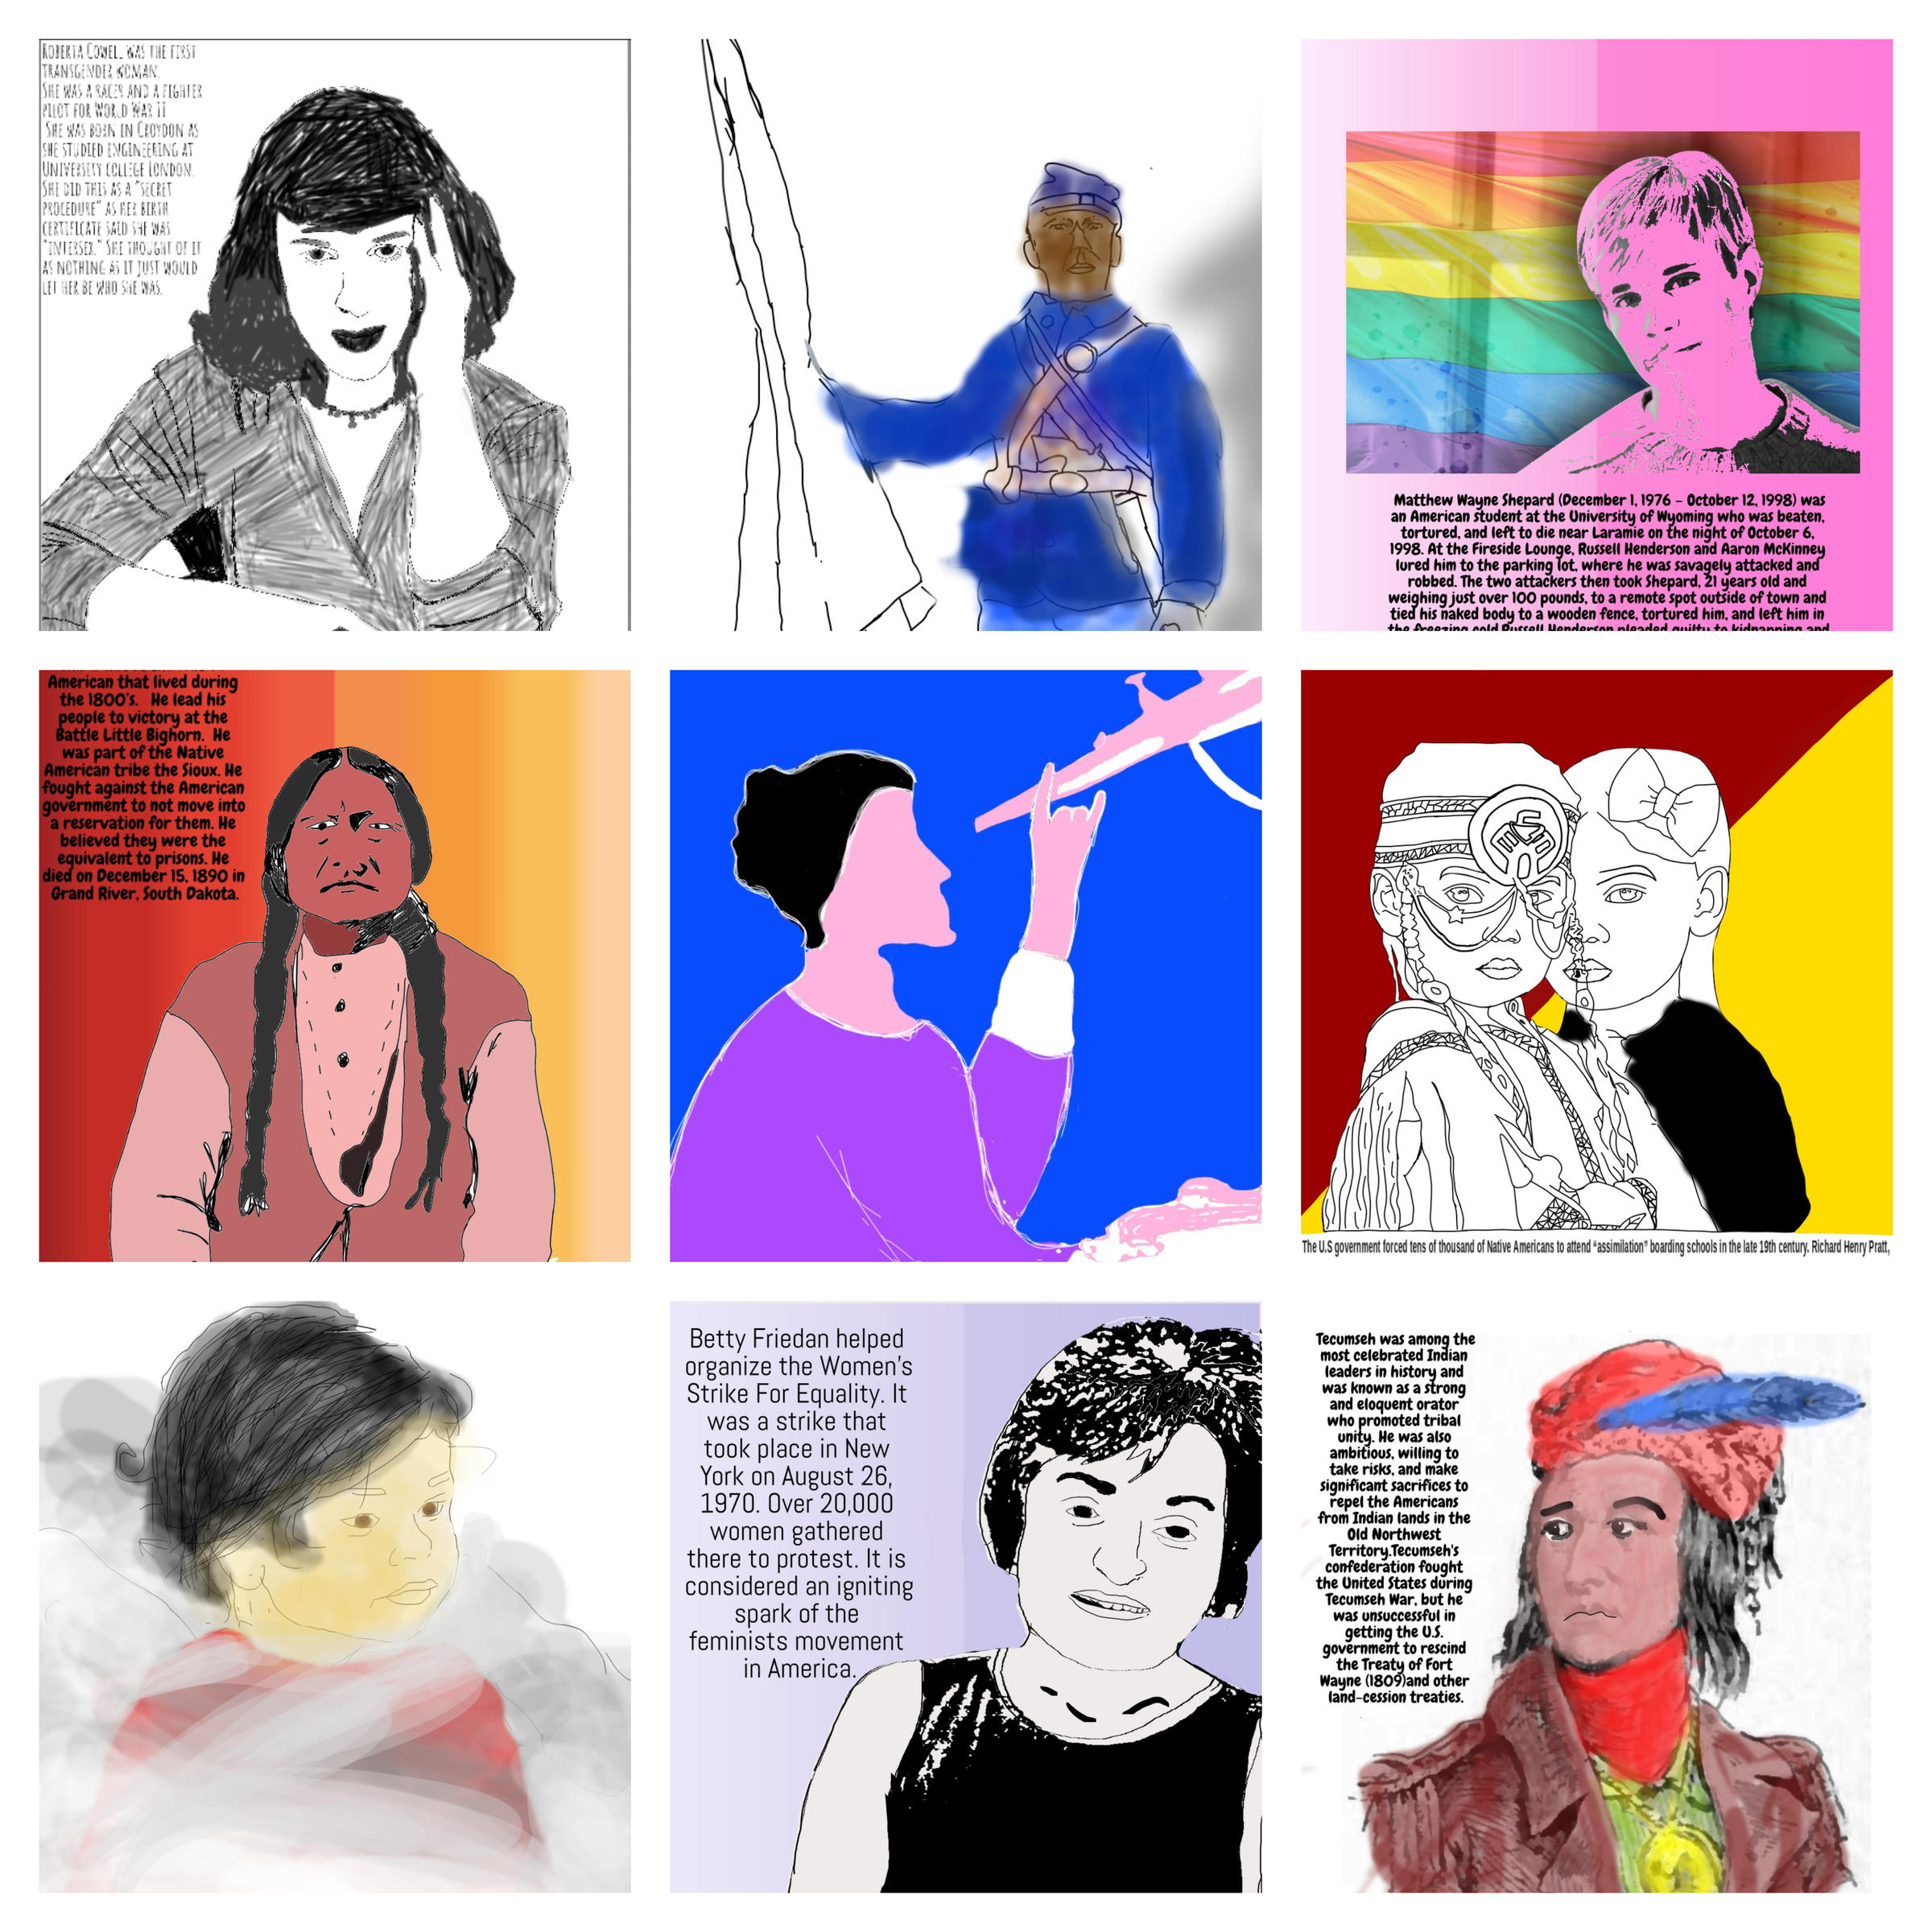 A collection of the posters students created to highlight historic injustices